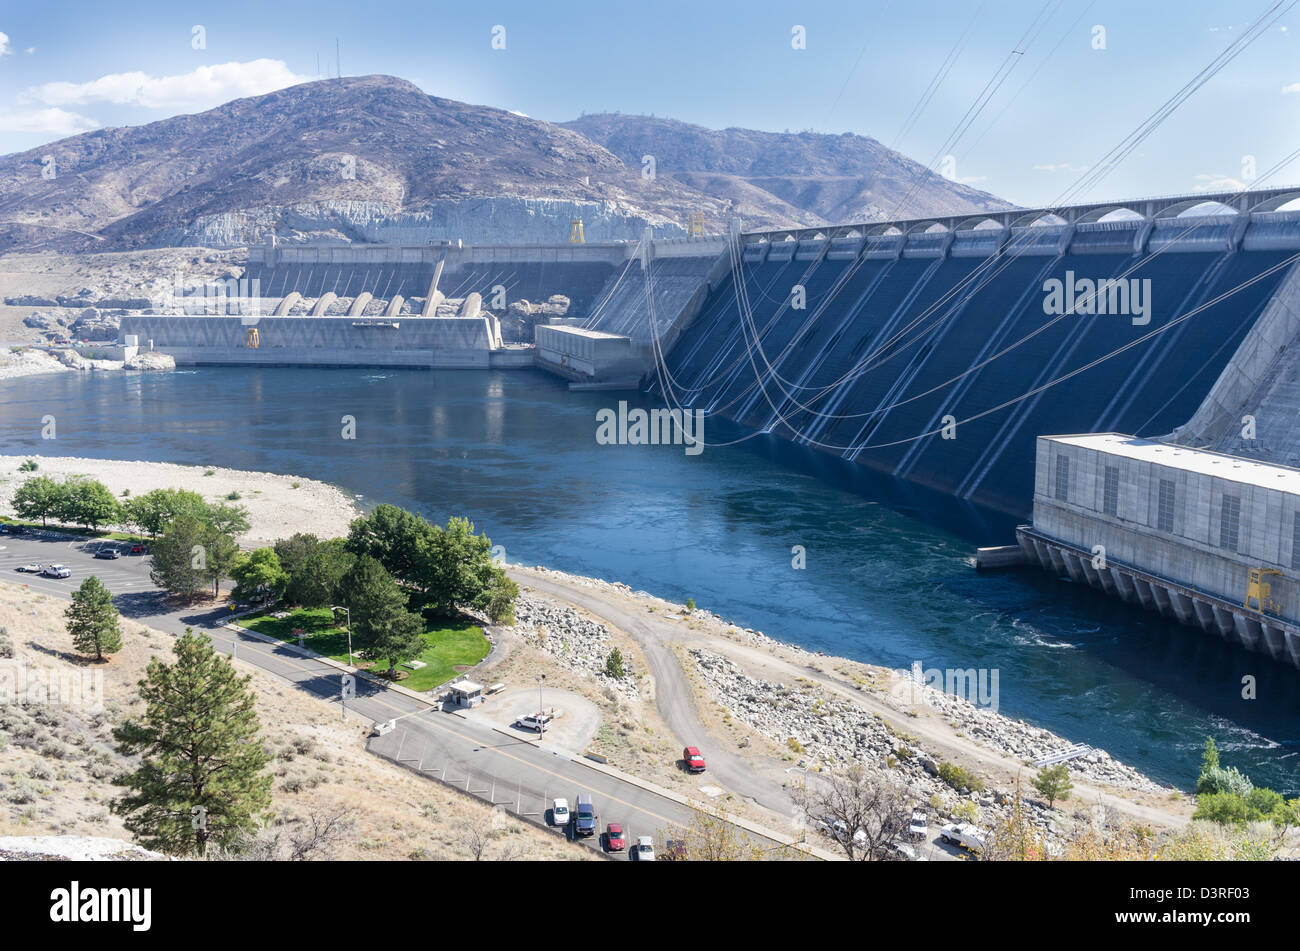 Grand coulee dam stock photos grand coulee dam stock images alamy coulee dam washington united states grand coulee dam is the largest producer of publicscrutiny Gallery